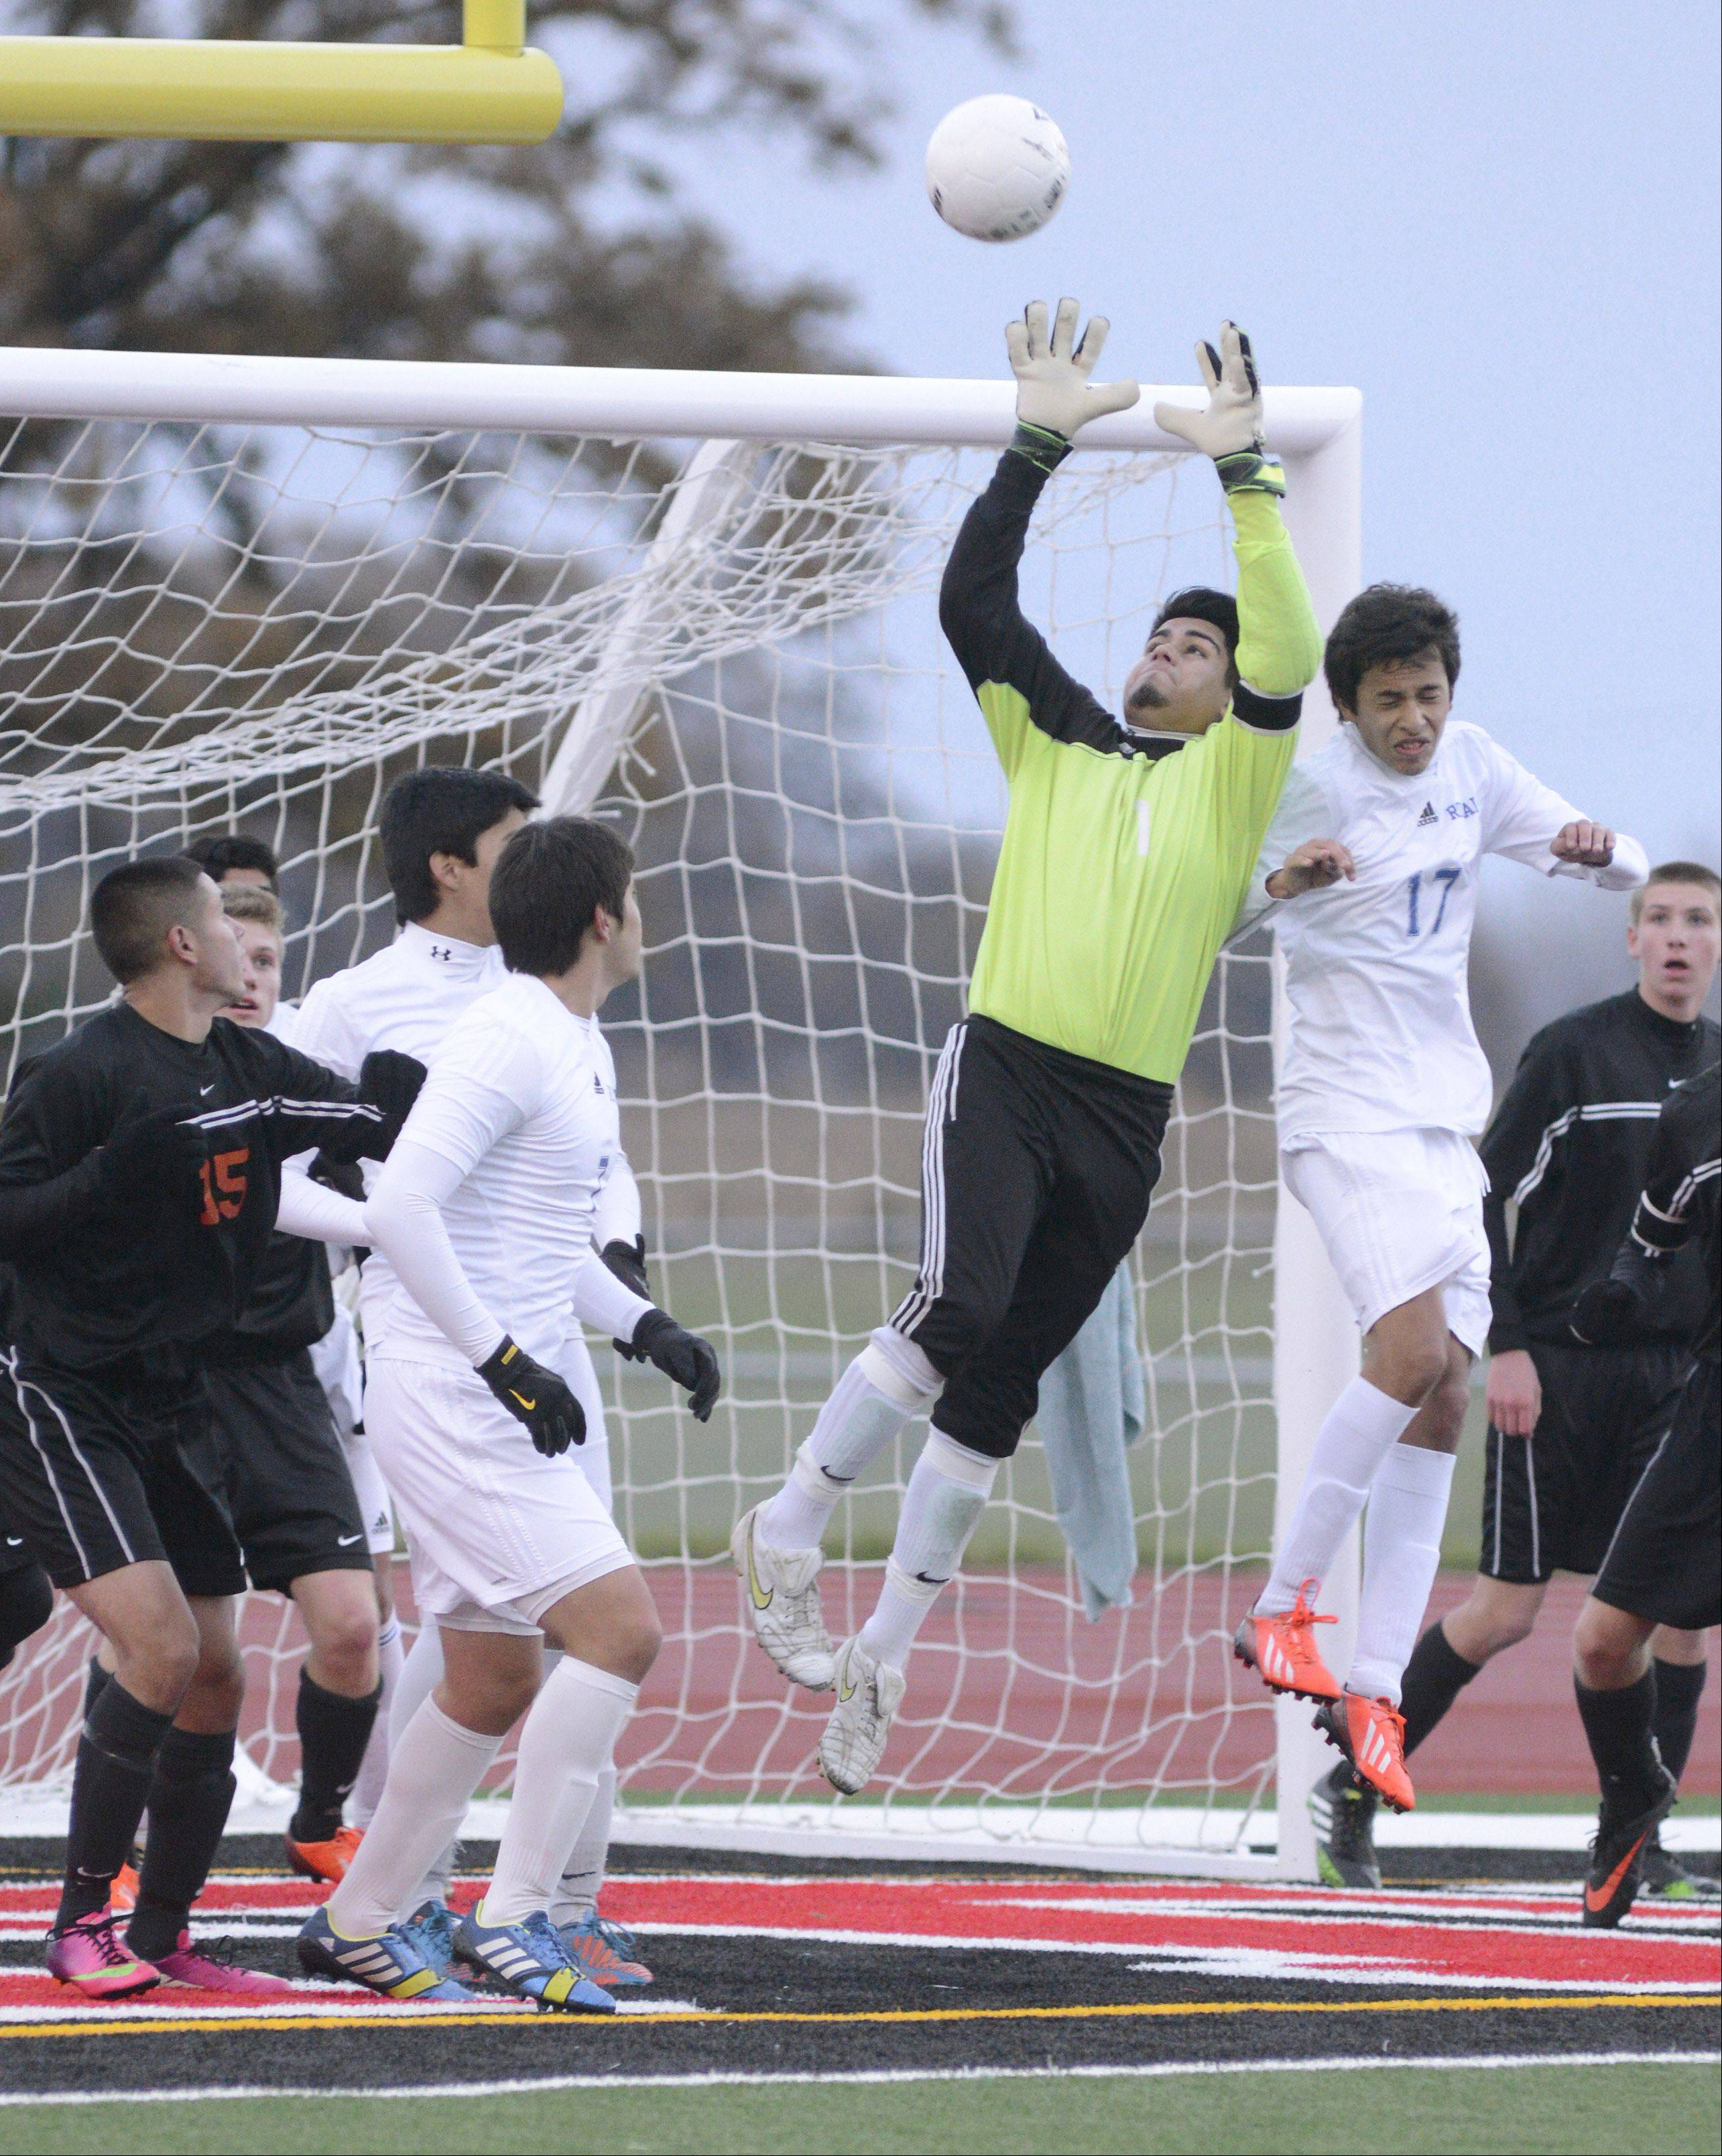 McHenry goalie Frankie Valle grabs the ball while battling Larkin's Freddy Jungo in the air for it in the first half of the Class 3A sectional championship at Huntley High School on Saturday, November 2.